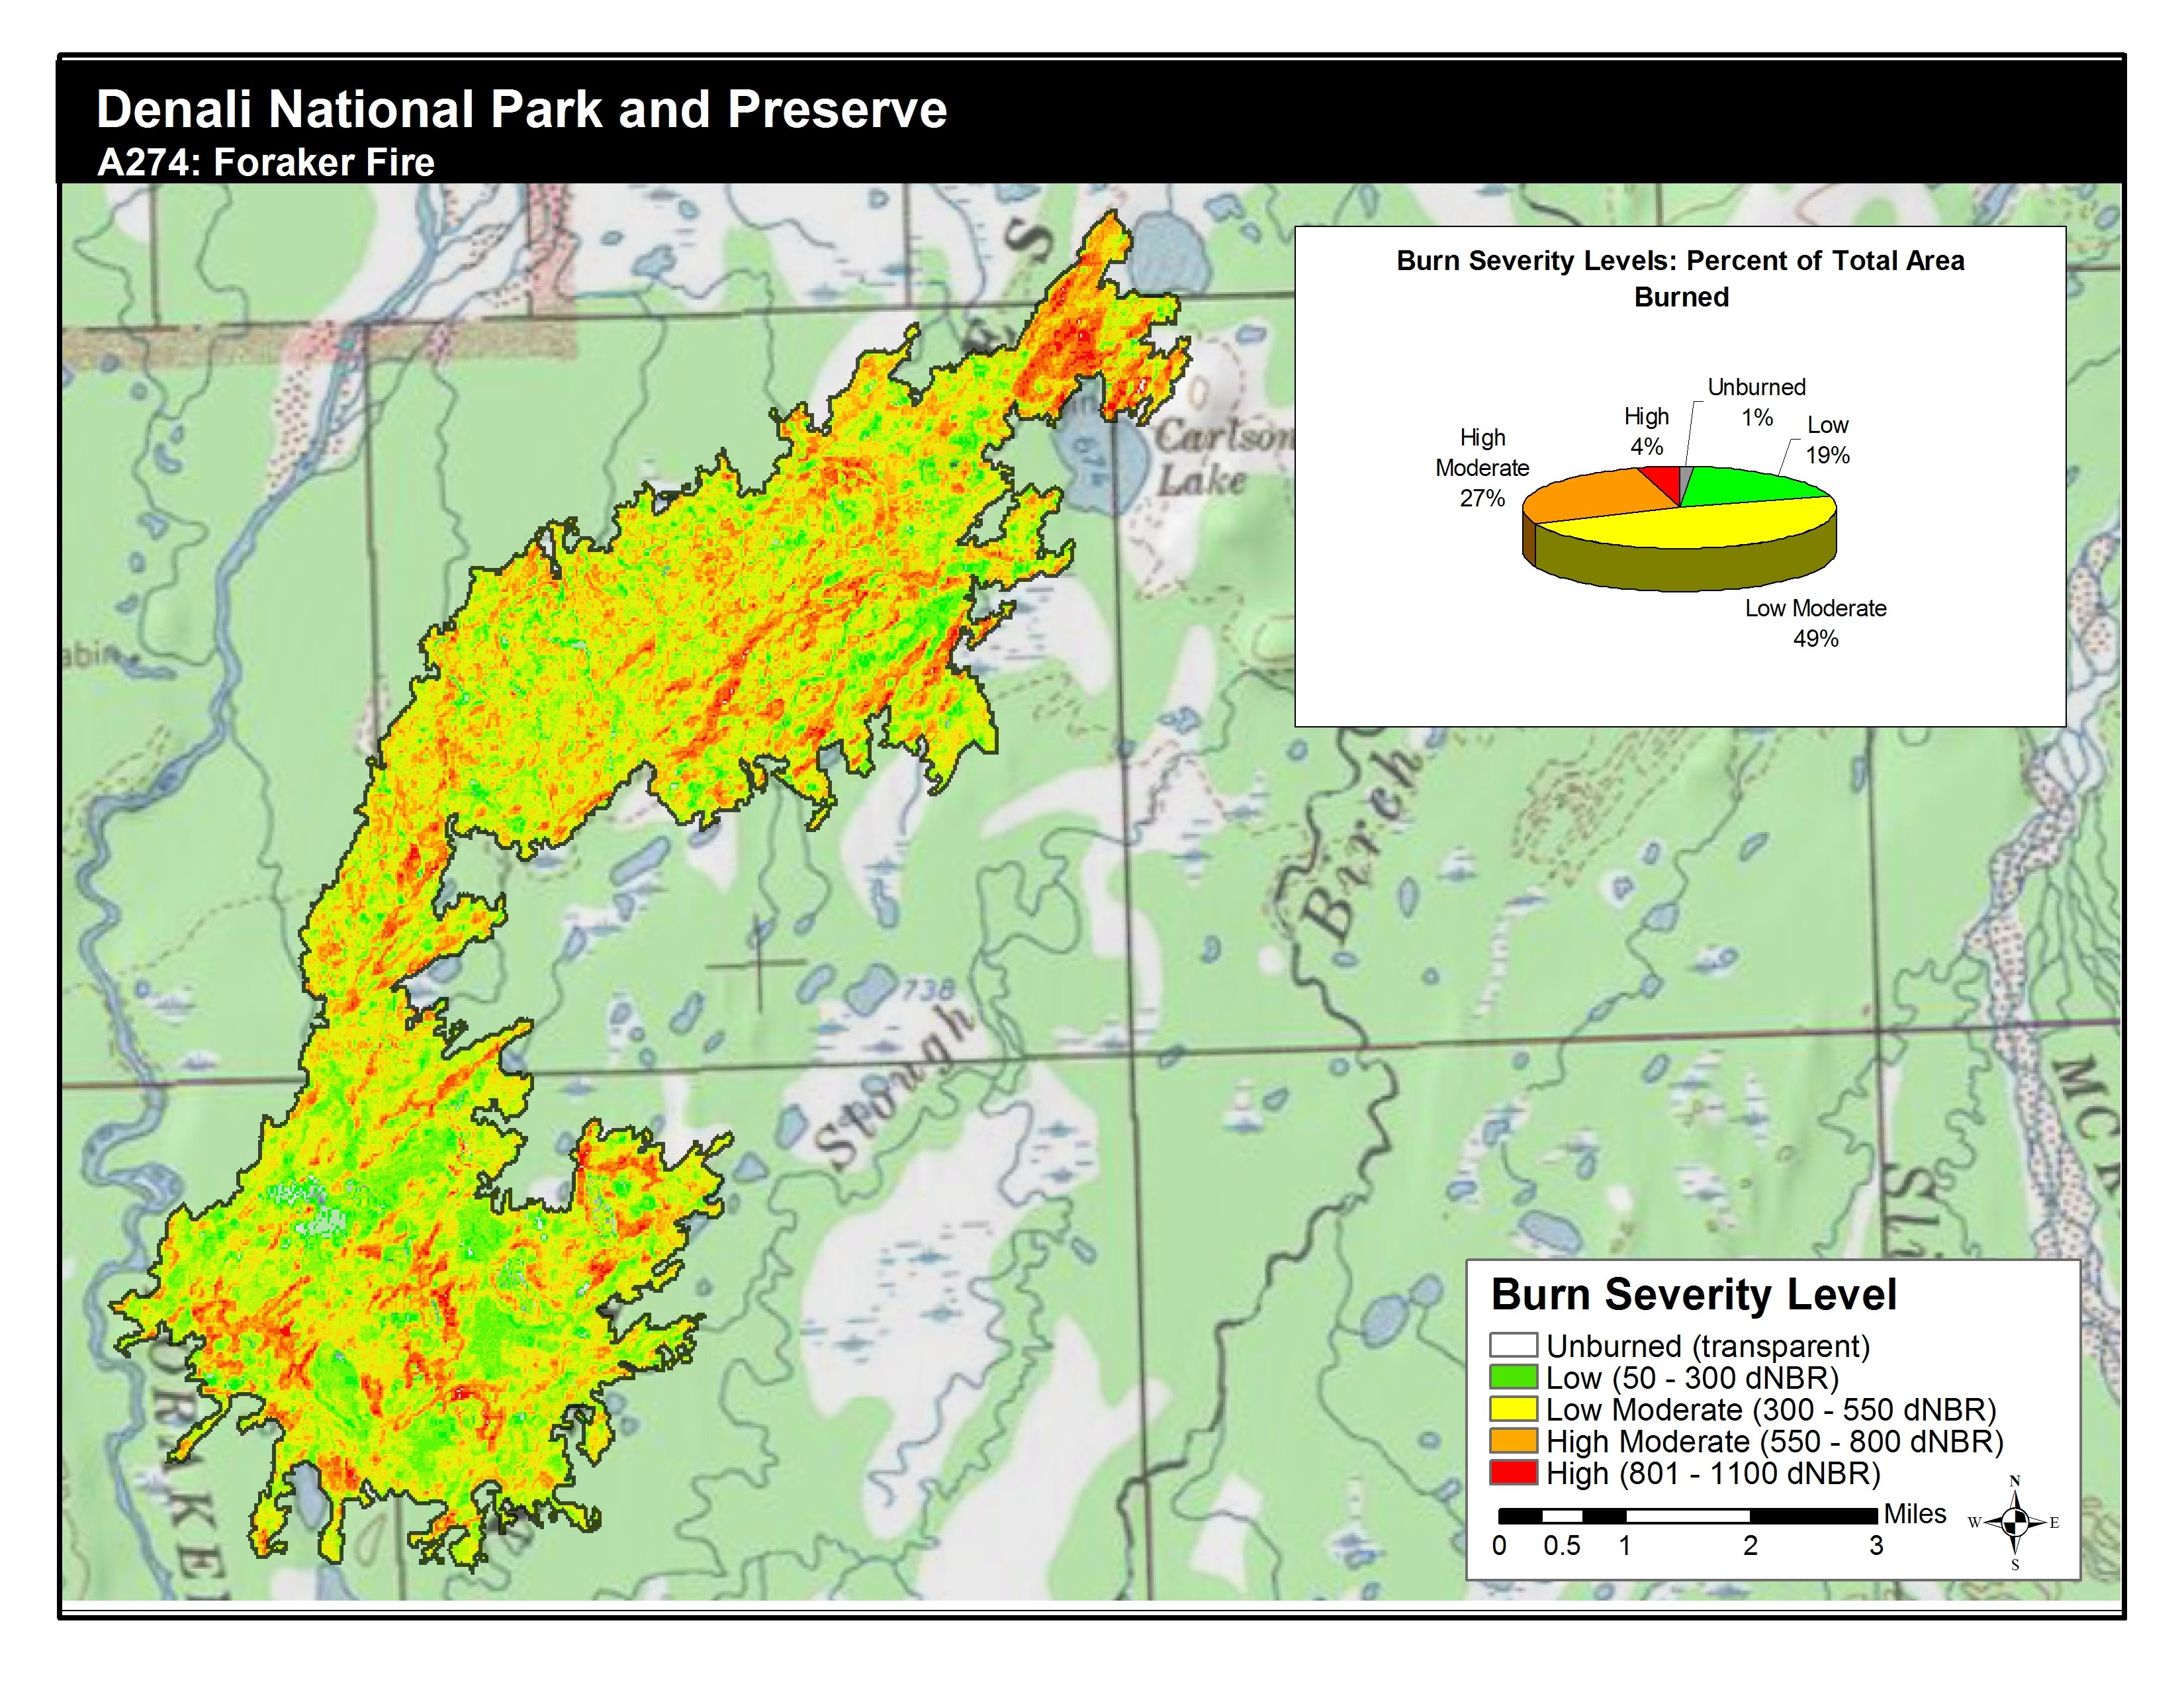 High Park Fire Map.Space Based Burn Severity Mapping In Alaska S National Parks U S